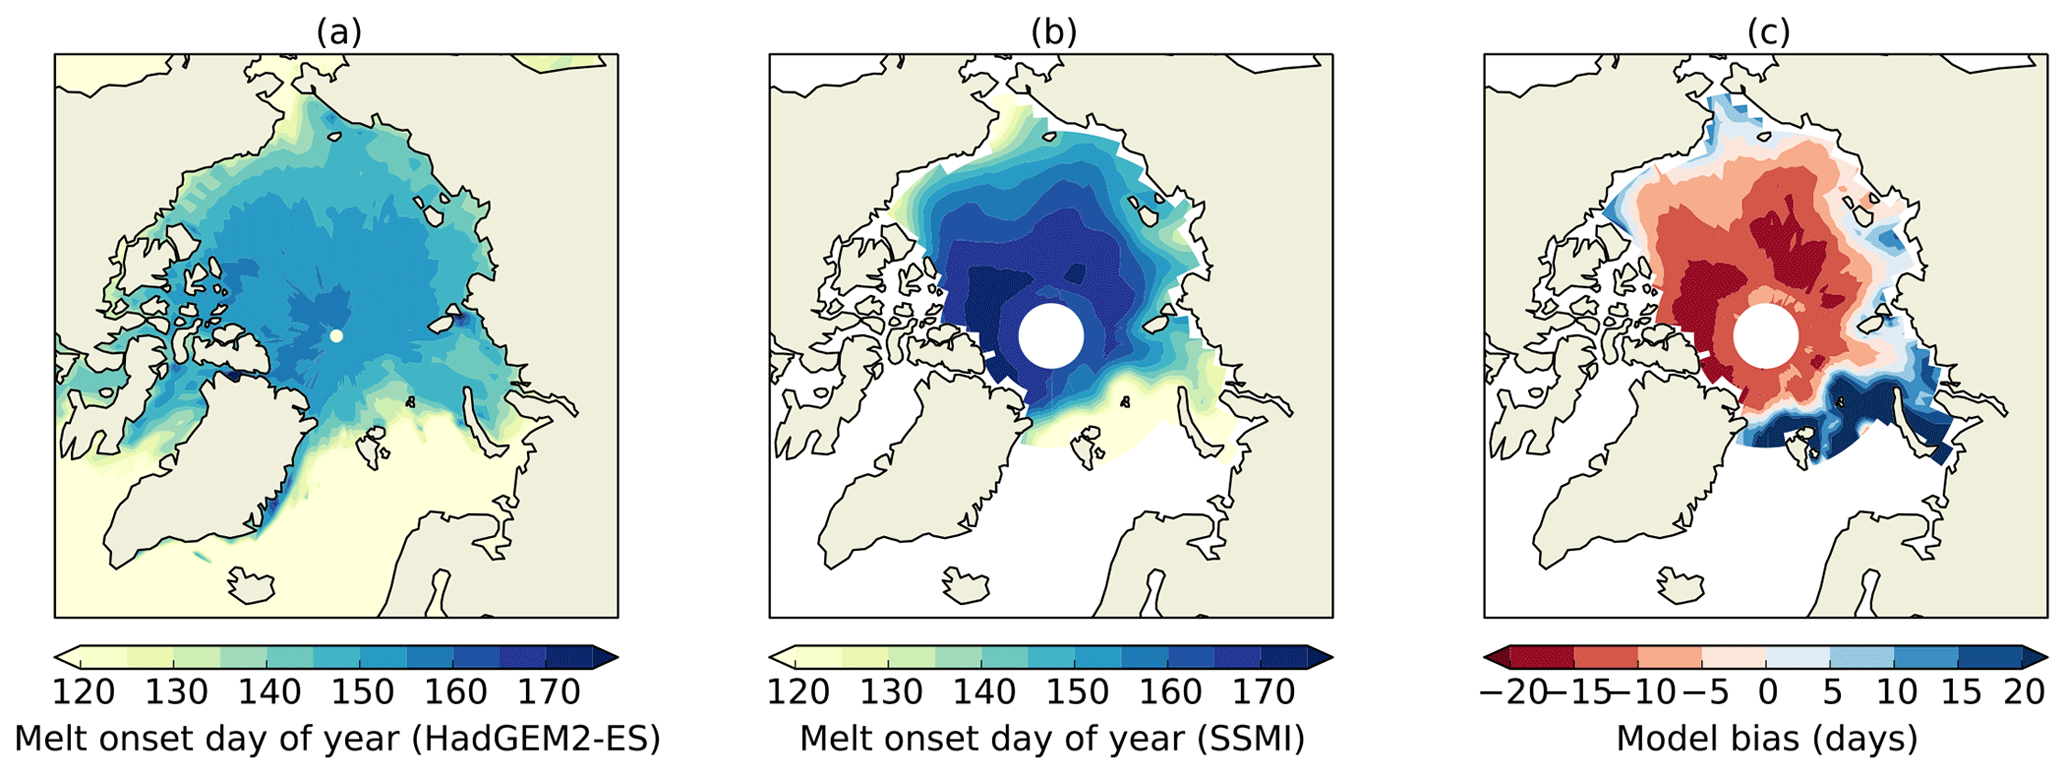 TC - Induced surface fluxes: a new framework for attributing Arctic